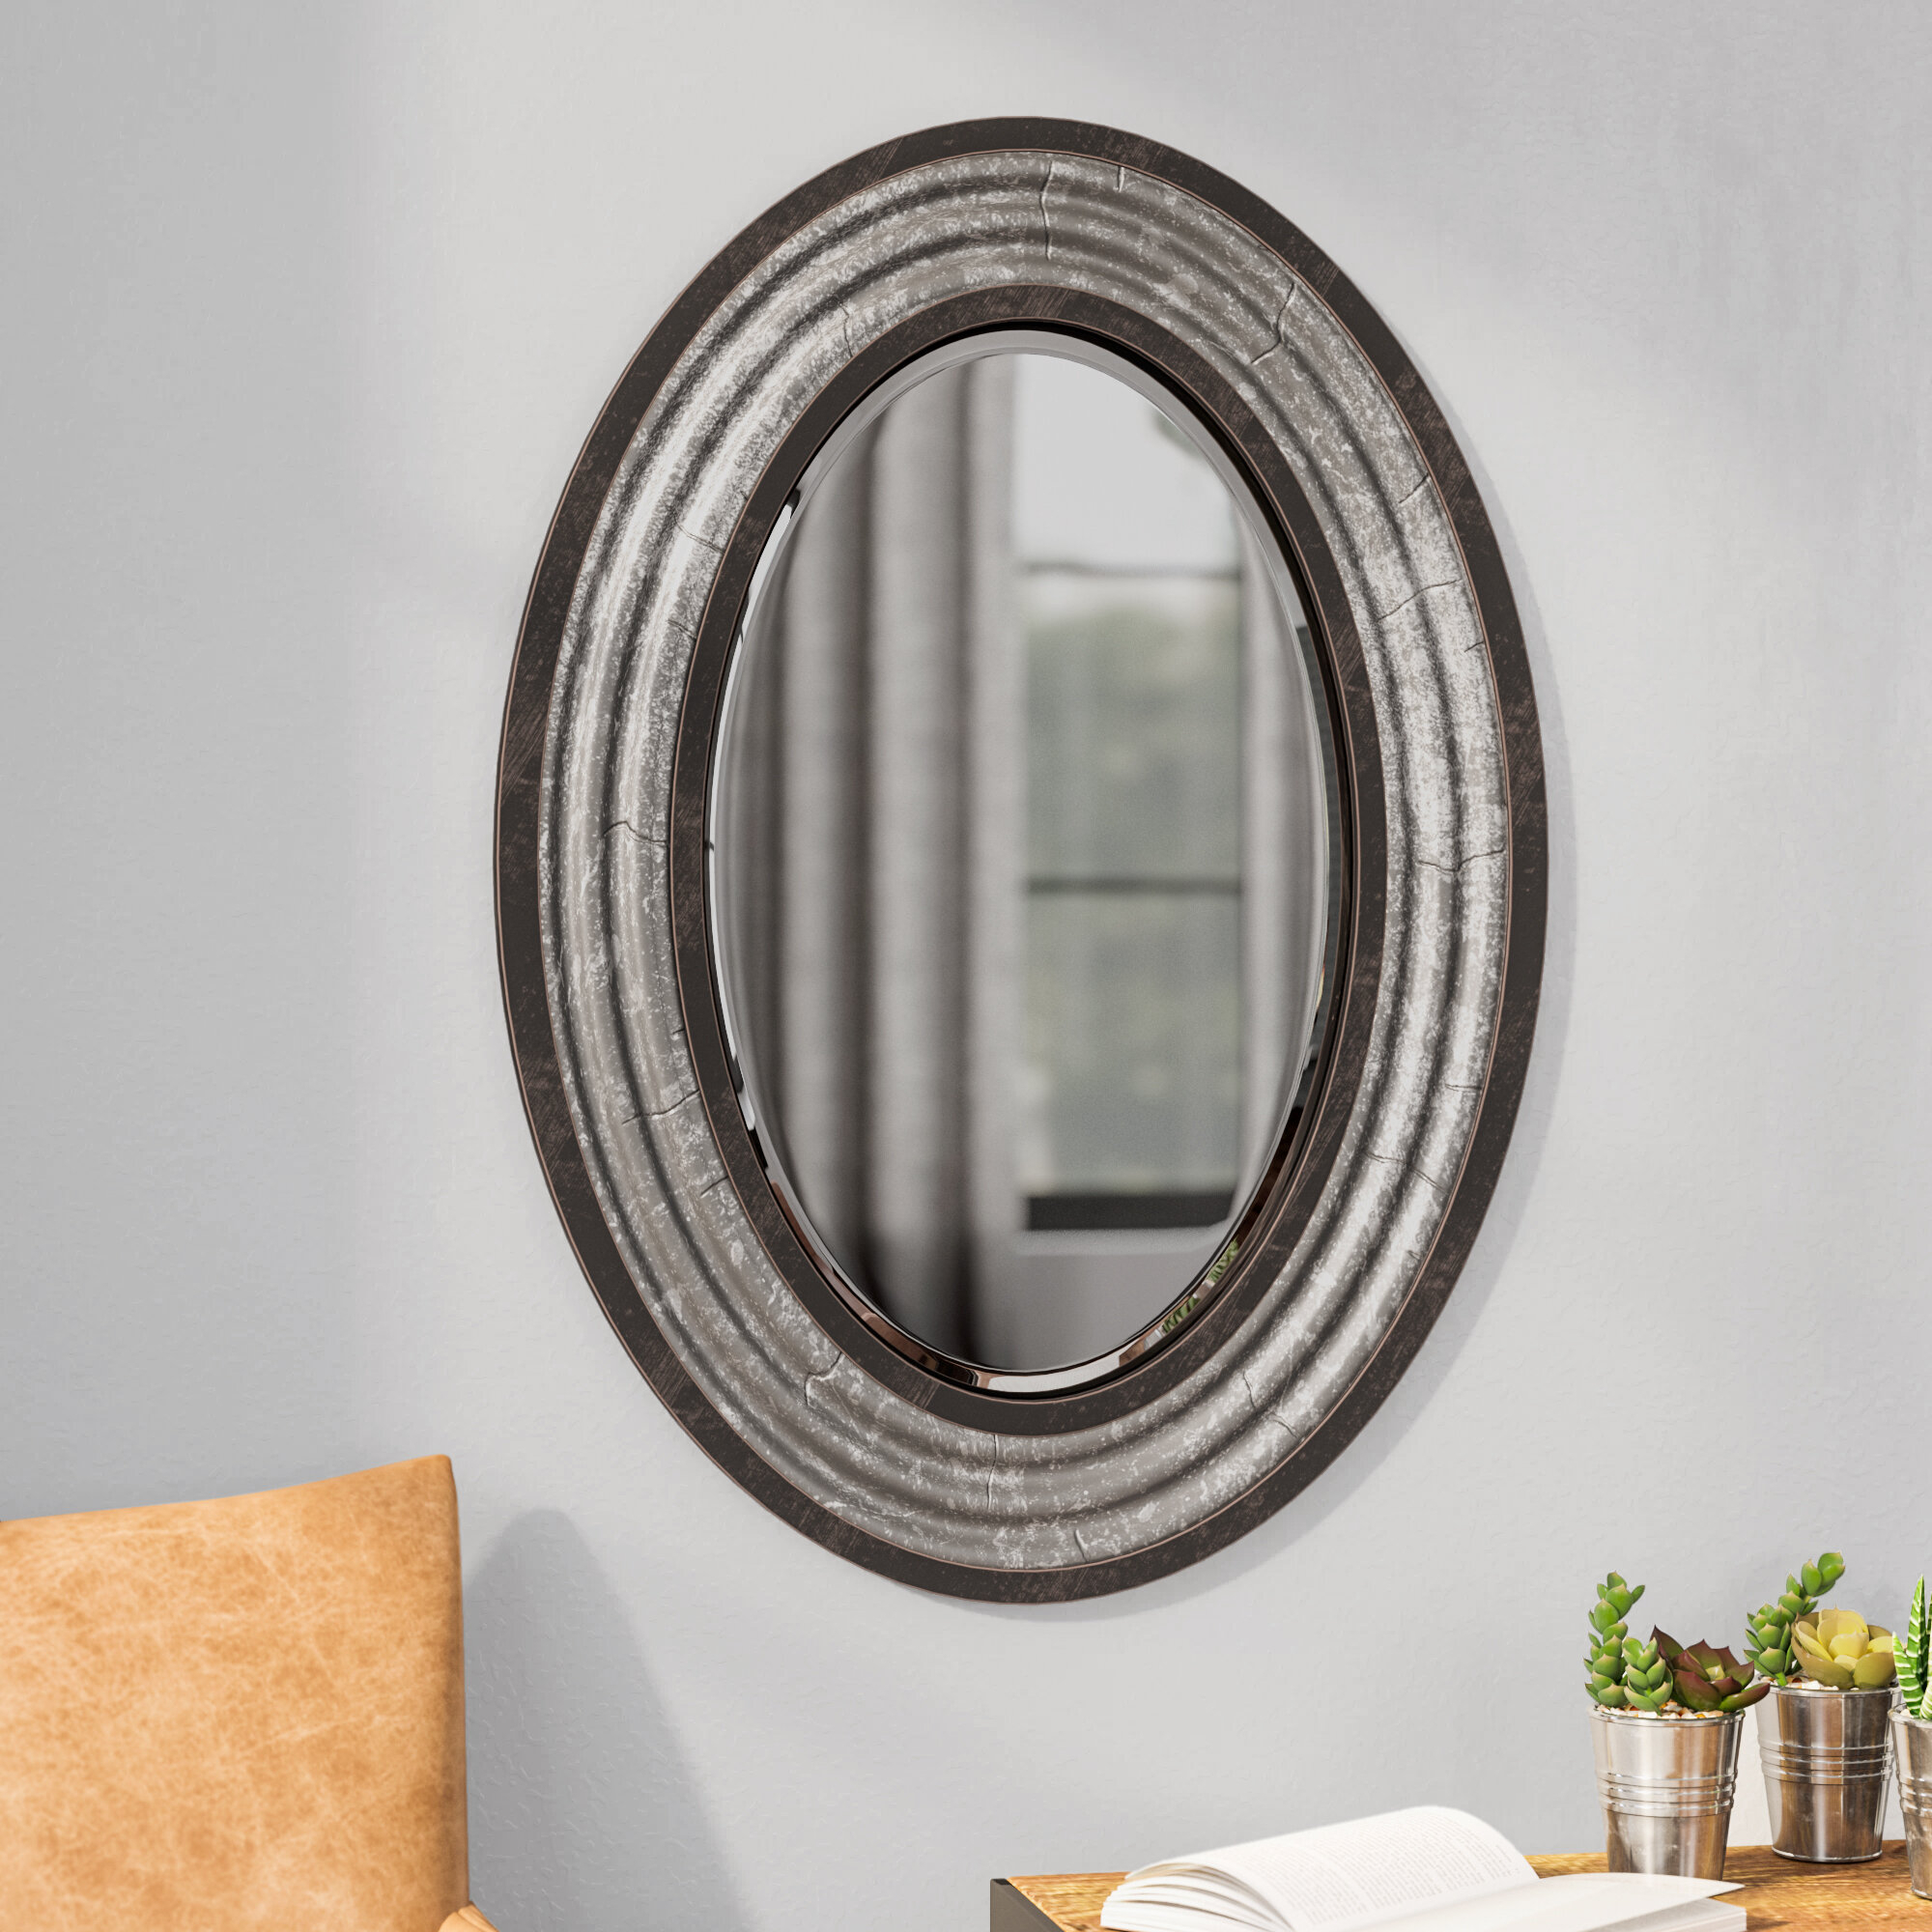 Modern & Contemporary Beveled Wall Mirror Intended For Modern & Contemporary Beveled Wall Mirrors (View 5 of 20)